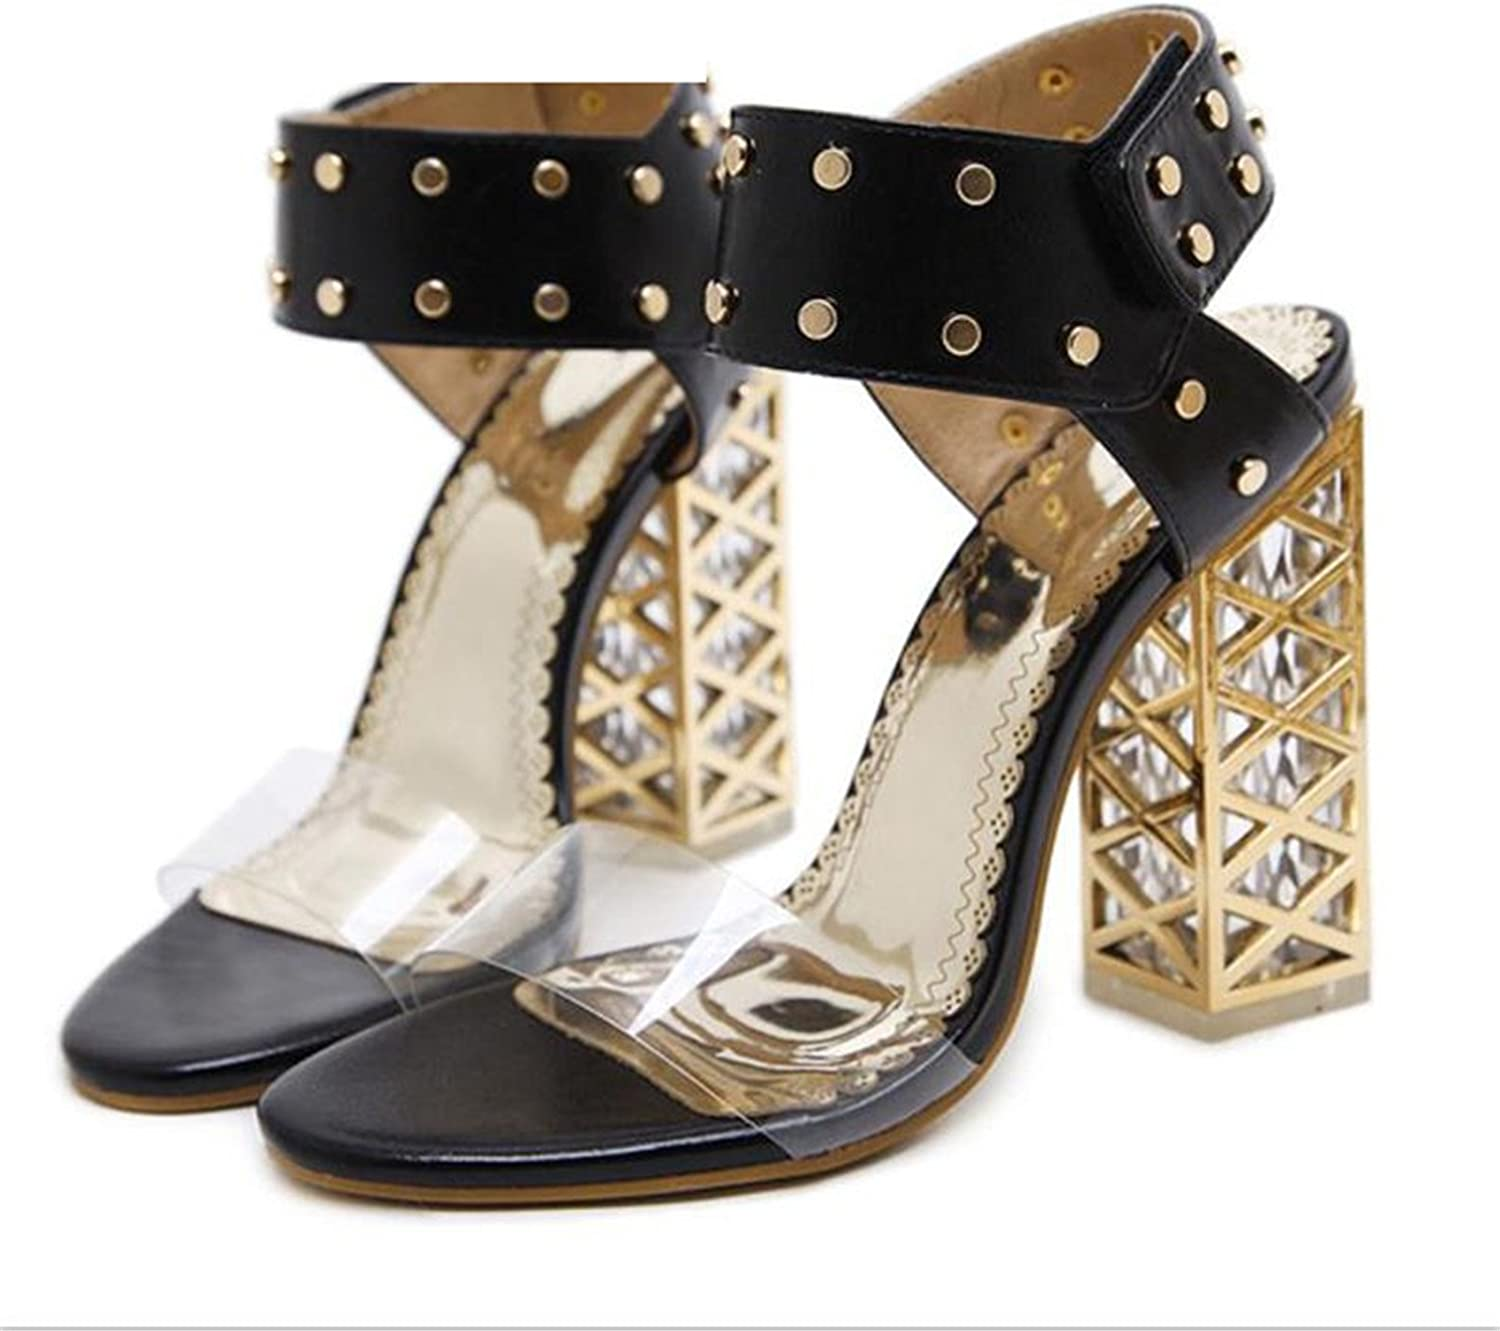 Twinkle UU Summer shoes Women 2018 Sexy PVC Crystal Open Toe High Heels Sandals shoes Size 34-40 Black White 923-9